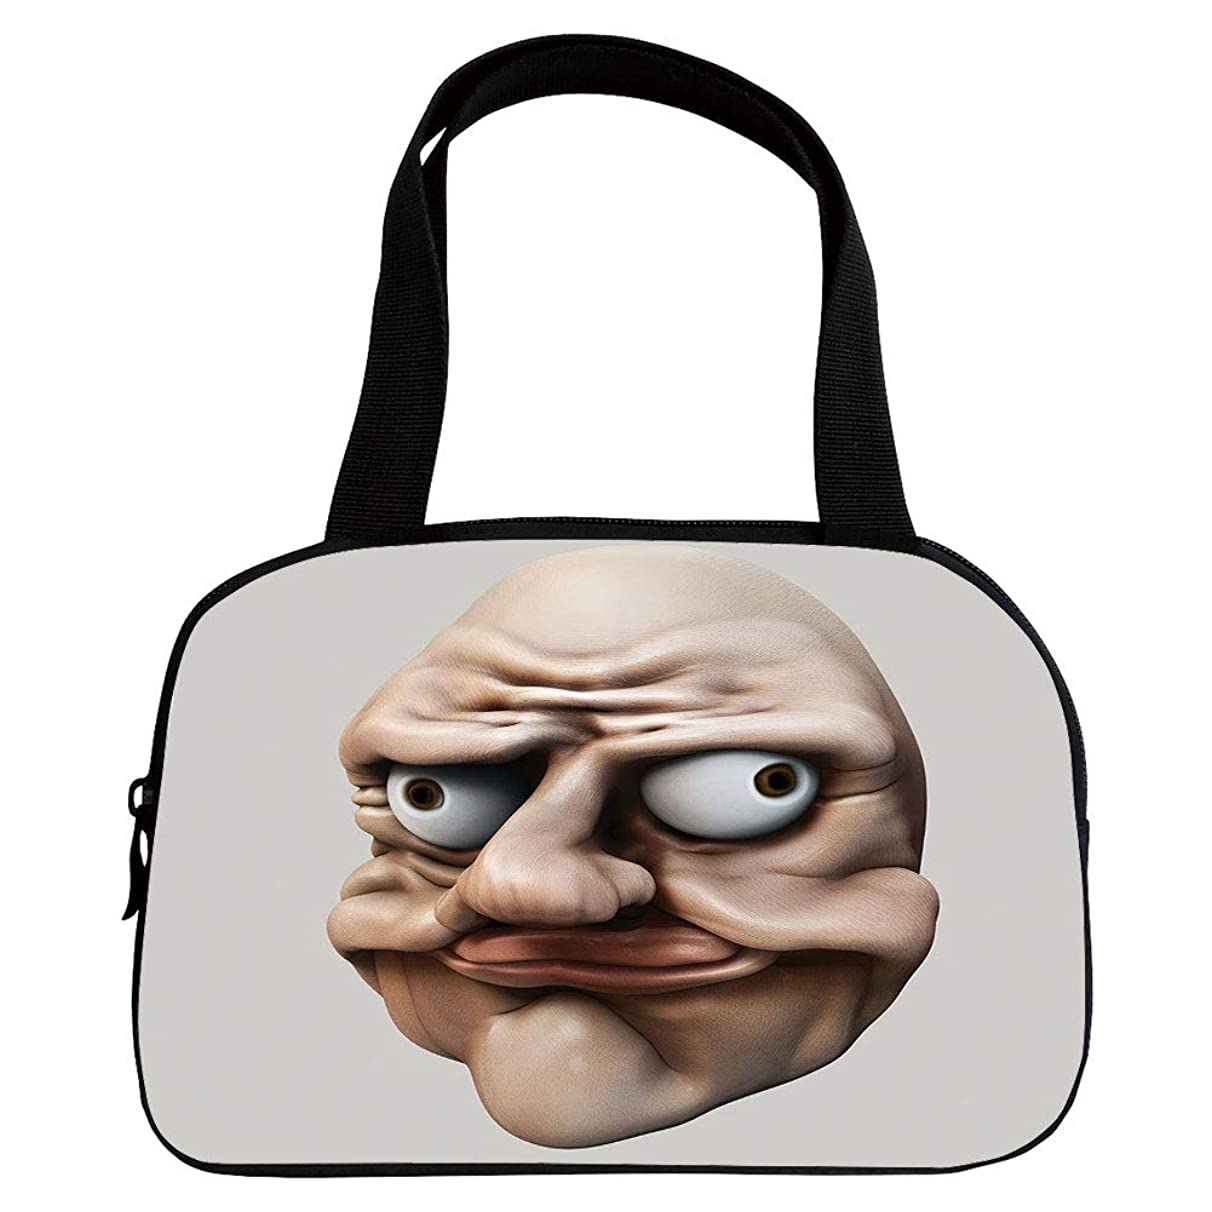 Personalized Customization Small Handbag Pink,Humor,Grumpy Internet Troll Face with Trippy Gestures Ugly Post Meme Joke Image Decorative,Egg Shell and Tan,for Girls,Personalized Design.6.3